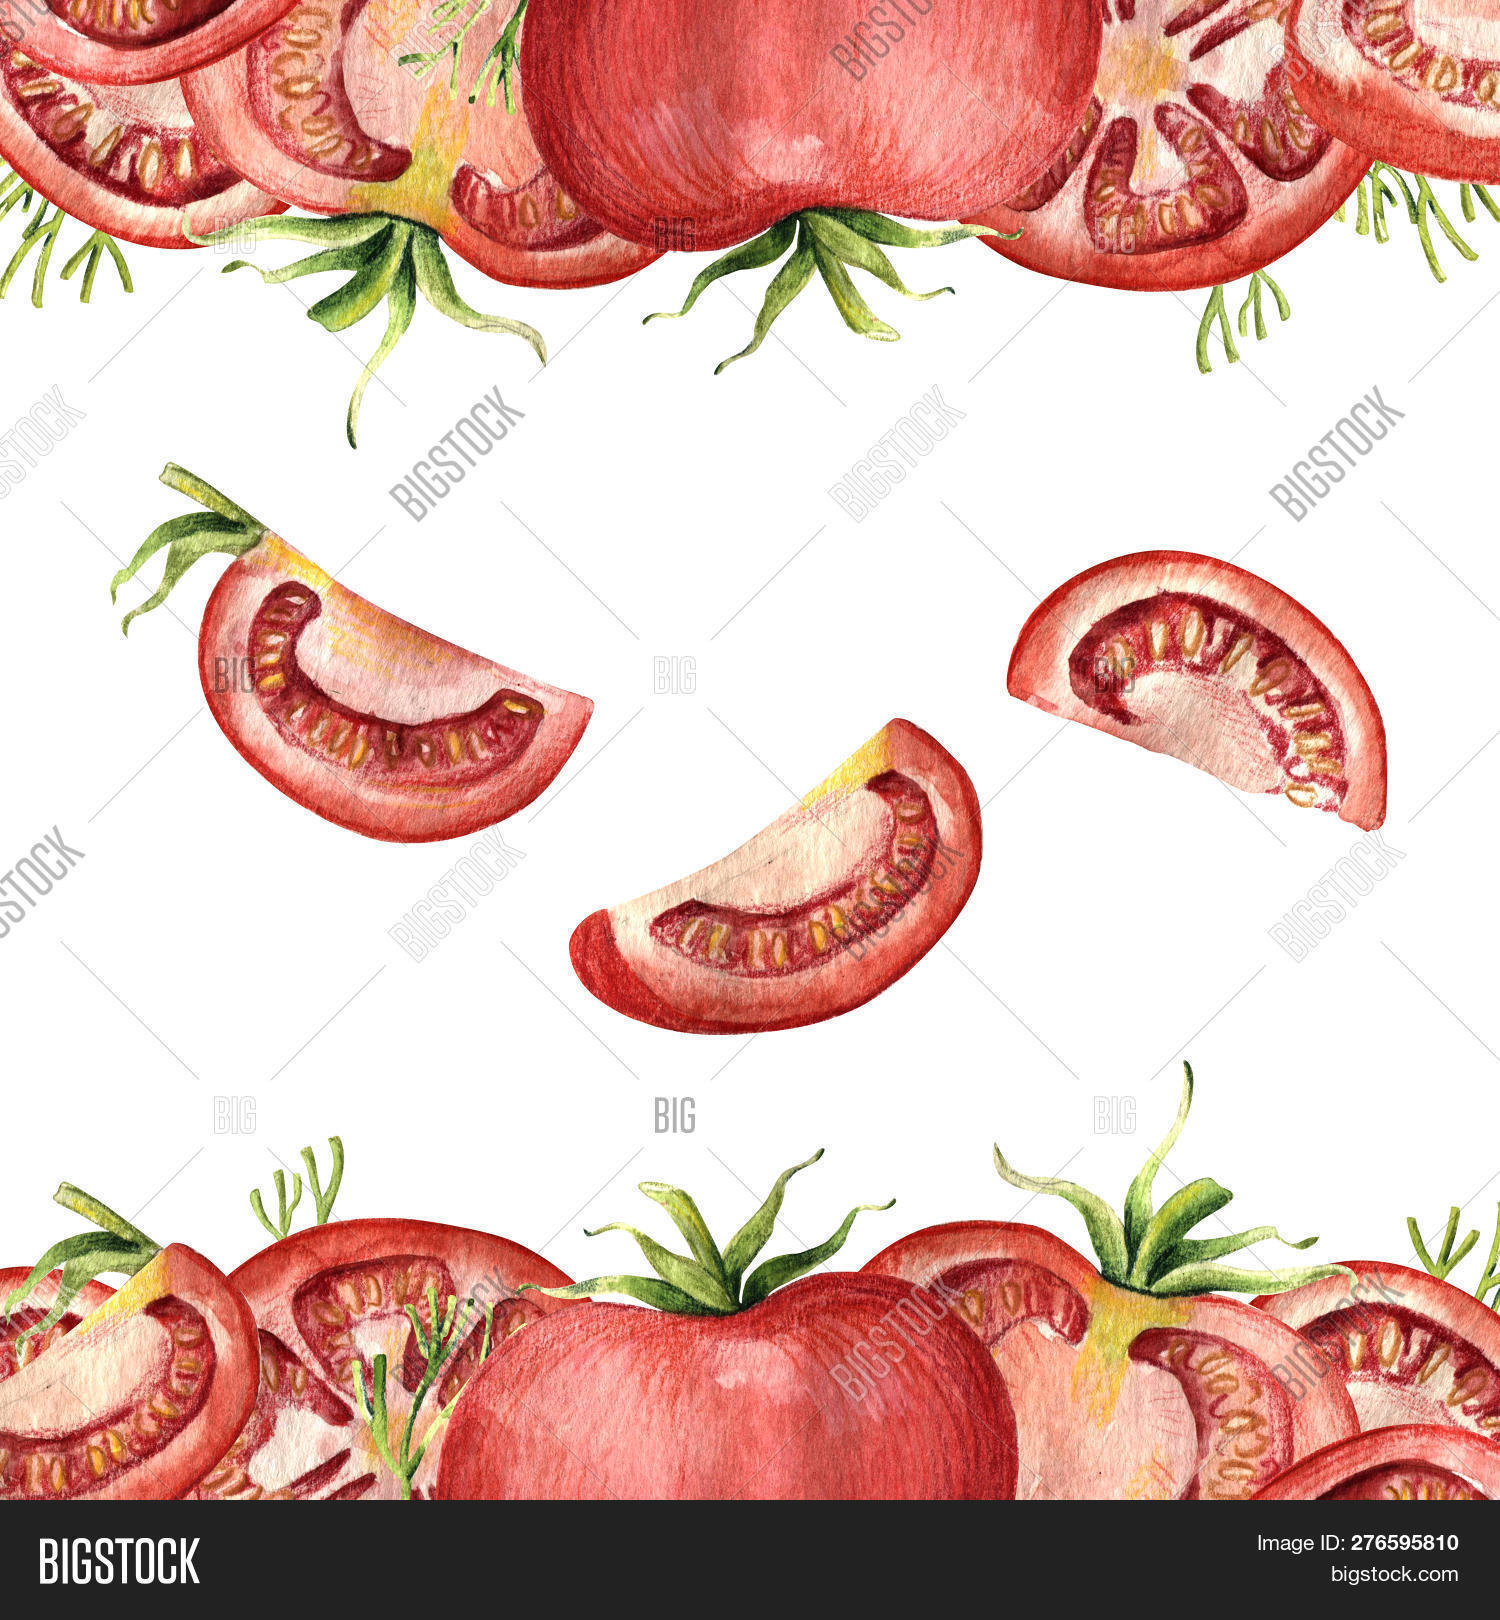 Banner Label Template Image Photo Free Trial Bigstock